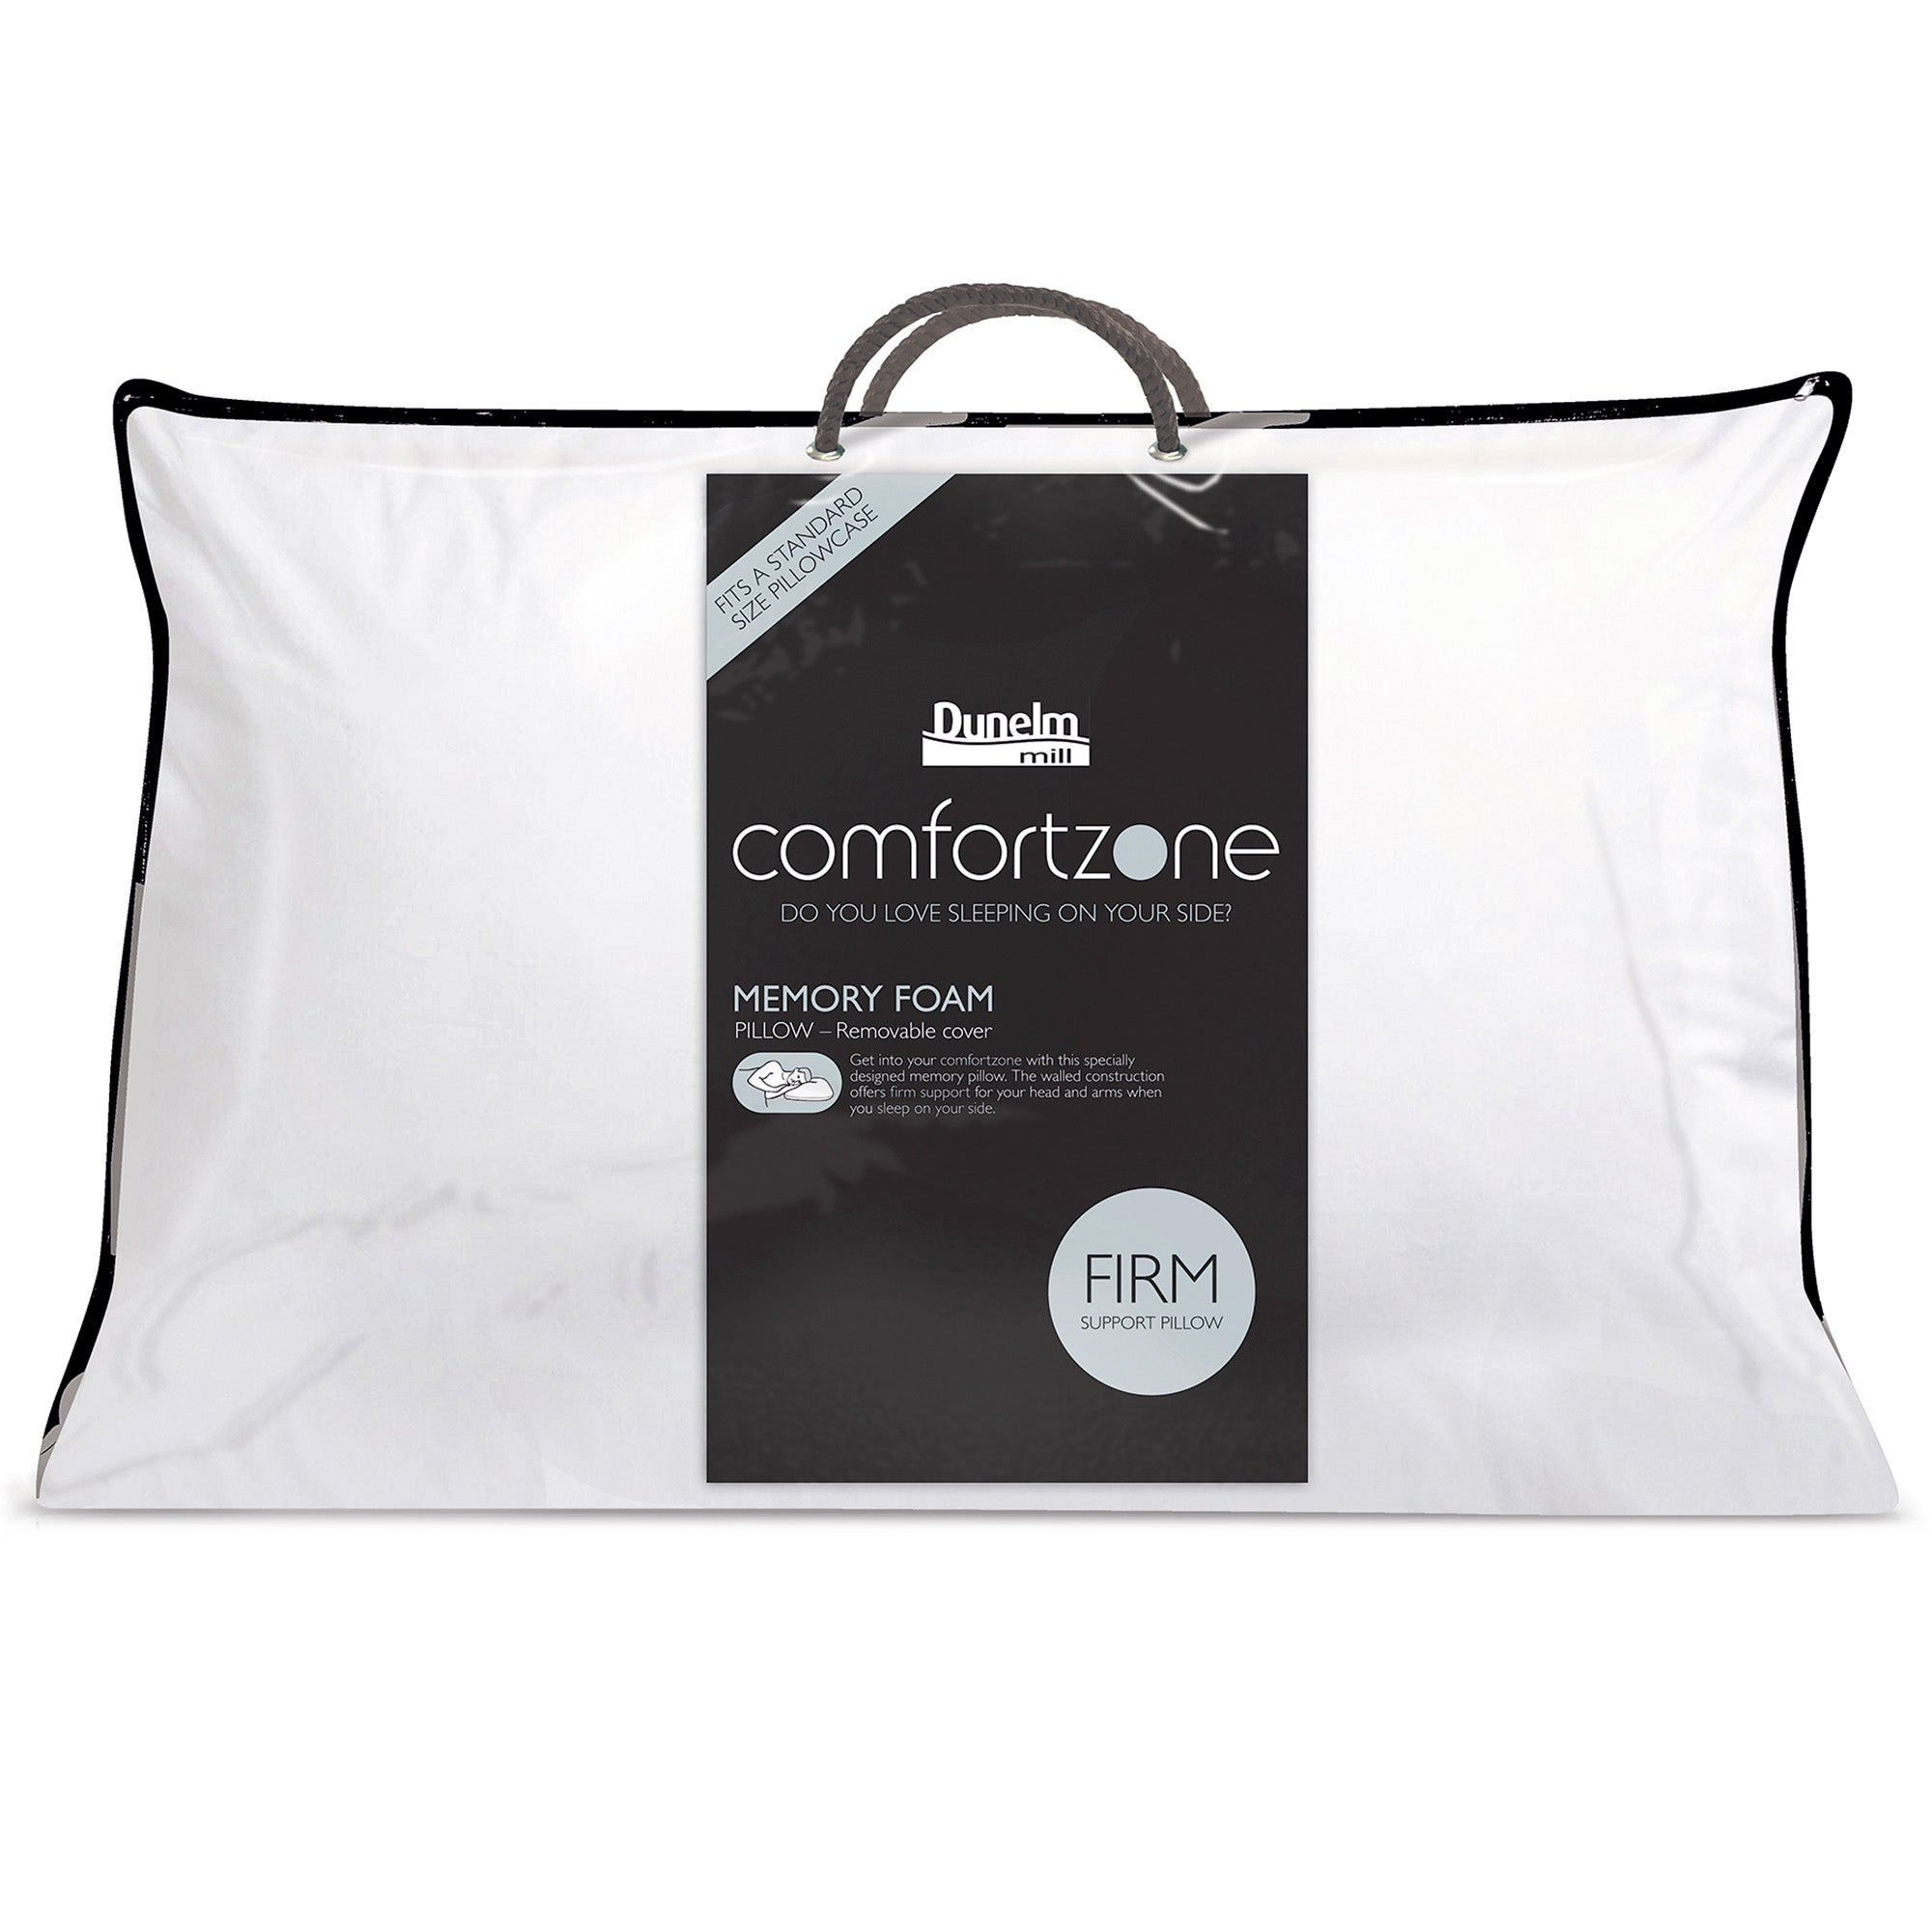 Comfortzone Memory Foam Pillow